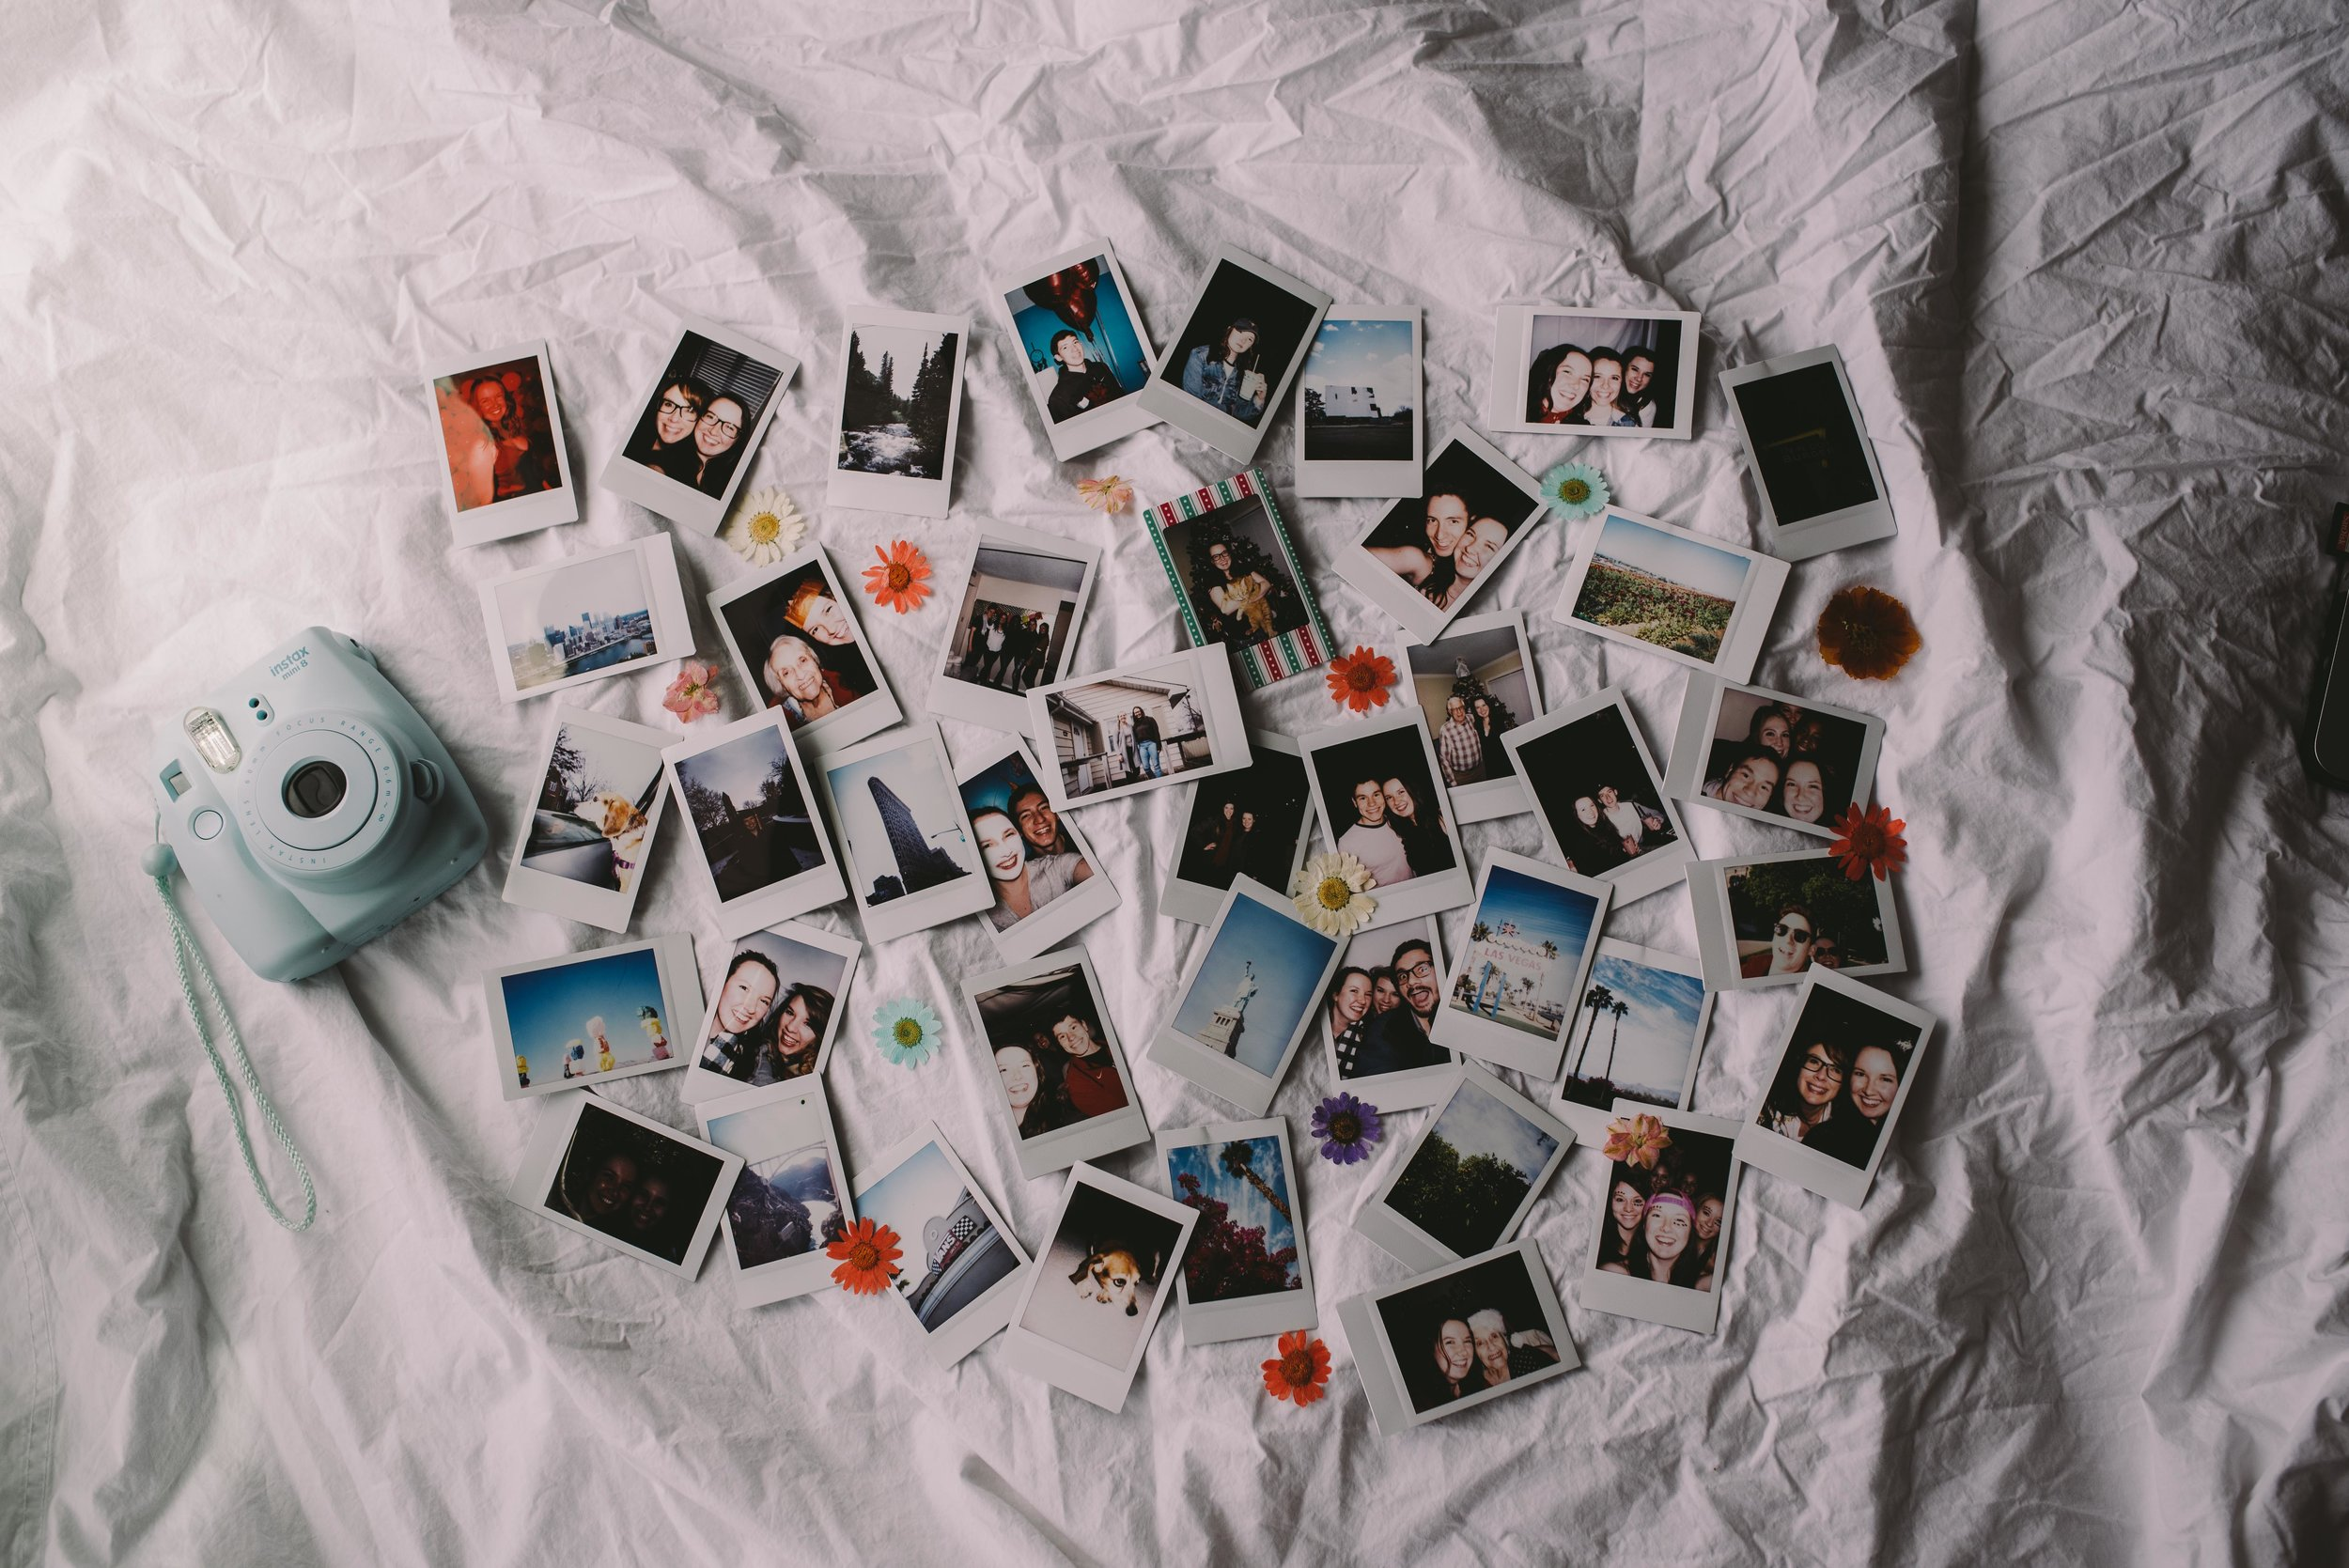 PolaroidMemories_May2018_TempeAZ_Portrait Photography In Tempe Arizona_ArizonaPortraitPhotographer_SamanthaRosePhotography_final_-2.jpg